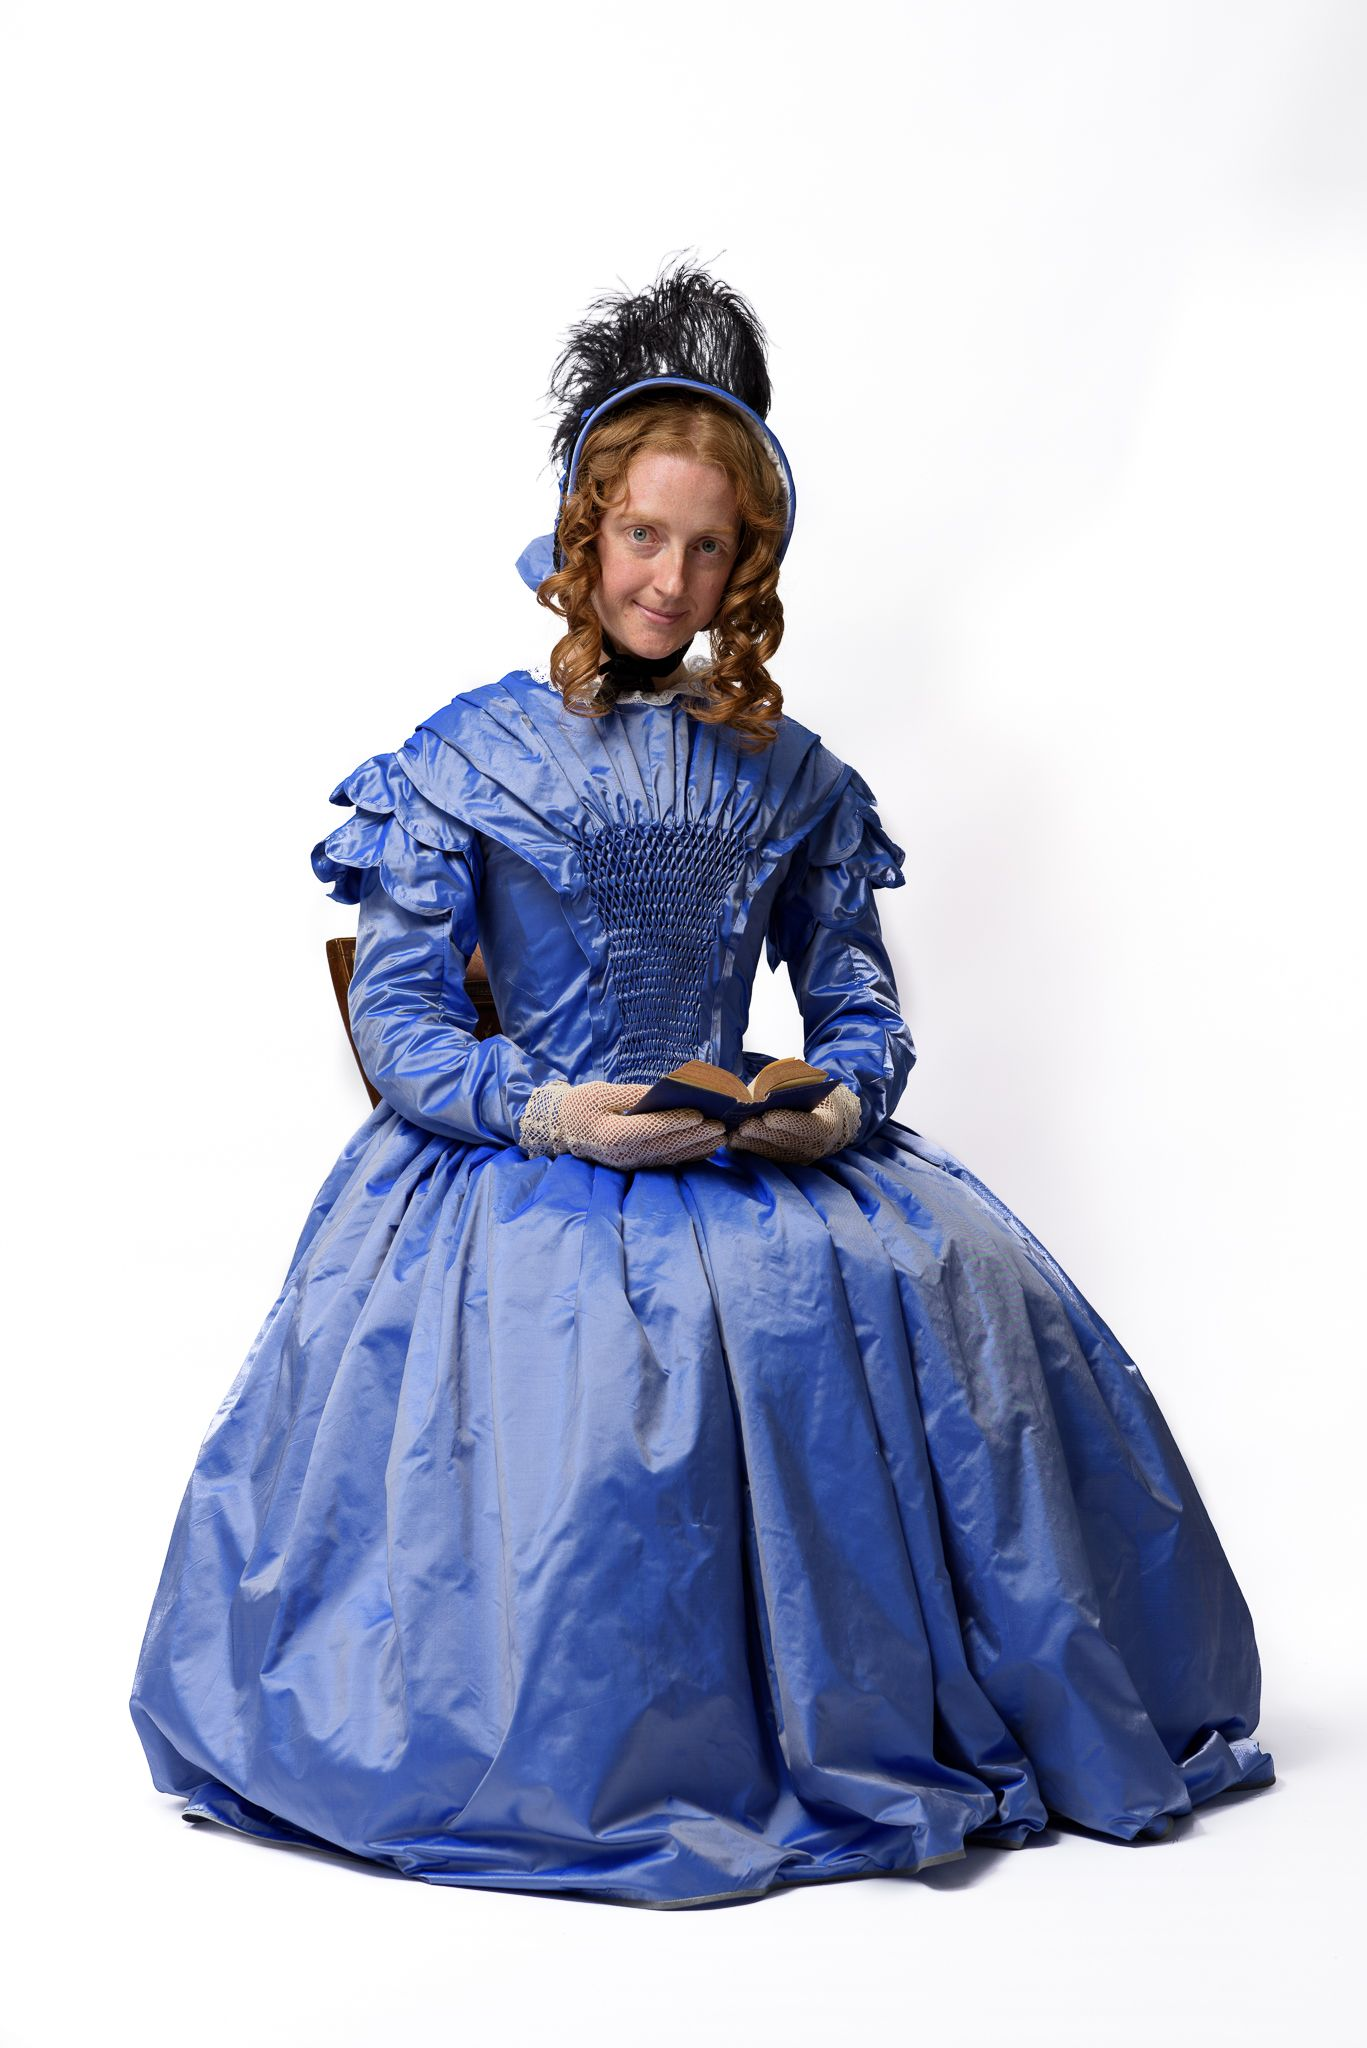 1845 day dress by Prior Attire. Construction and pattern